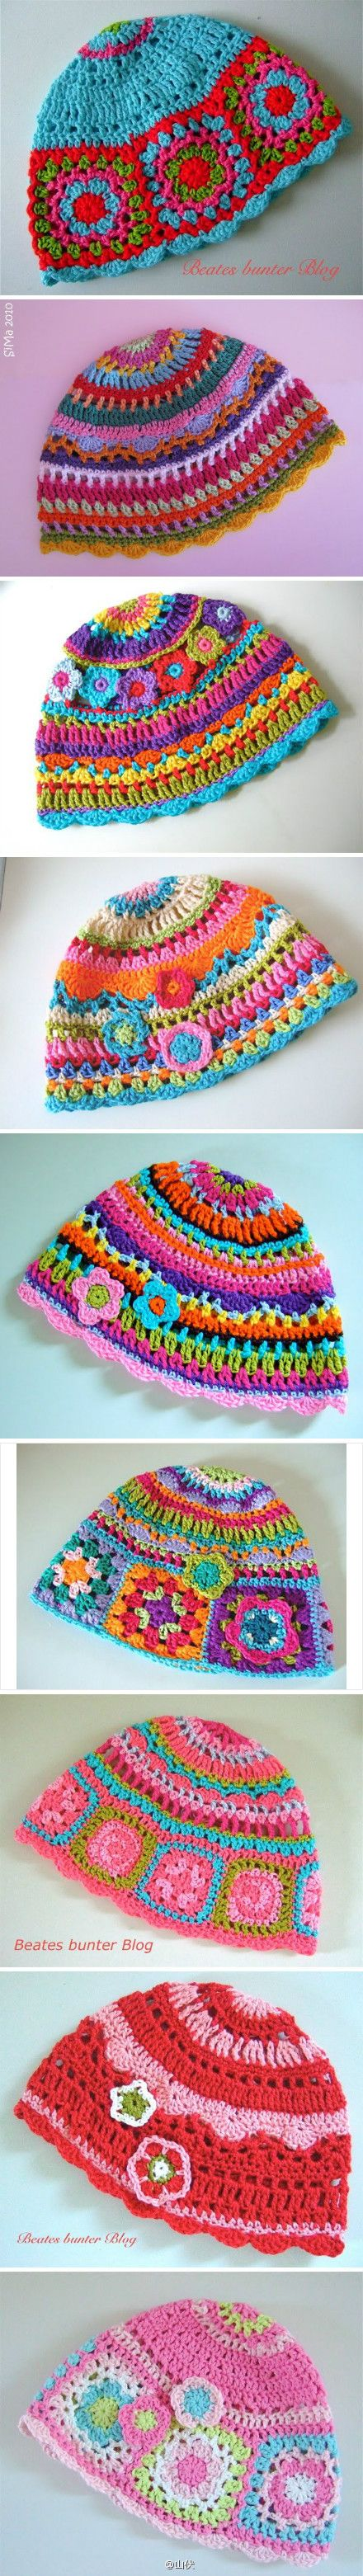 pretty crochet caps